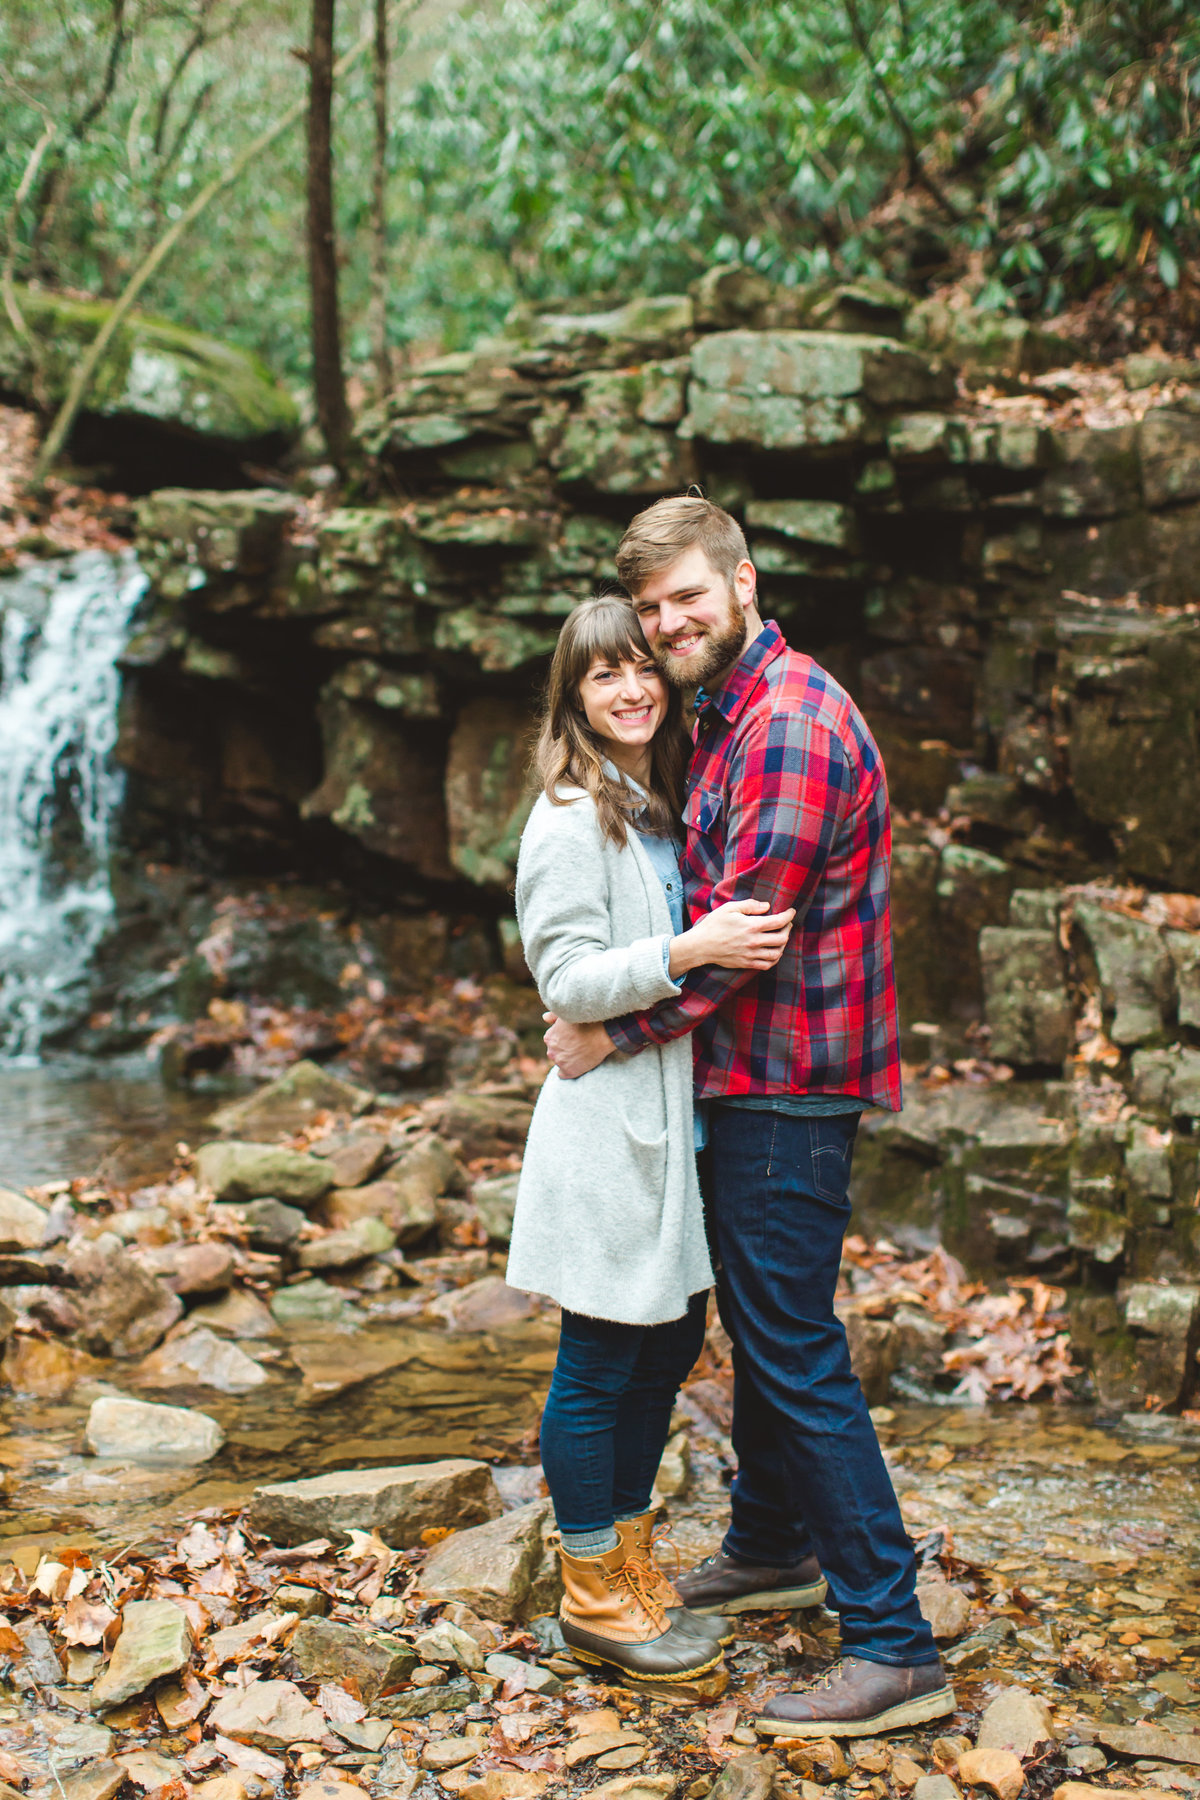 Benjamin & Alicia Outdoor Campfire Engagement Session on Hidden Rock Trail on Hone Quarry Ridge-5